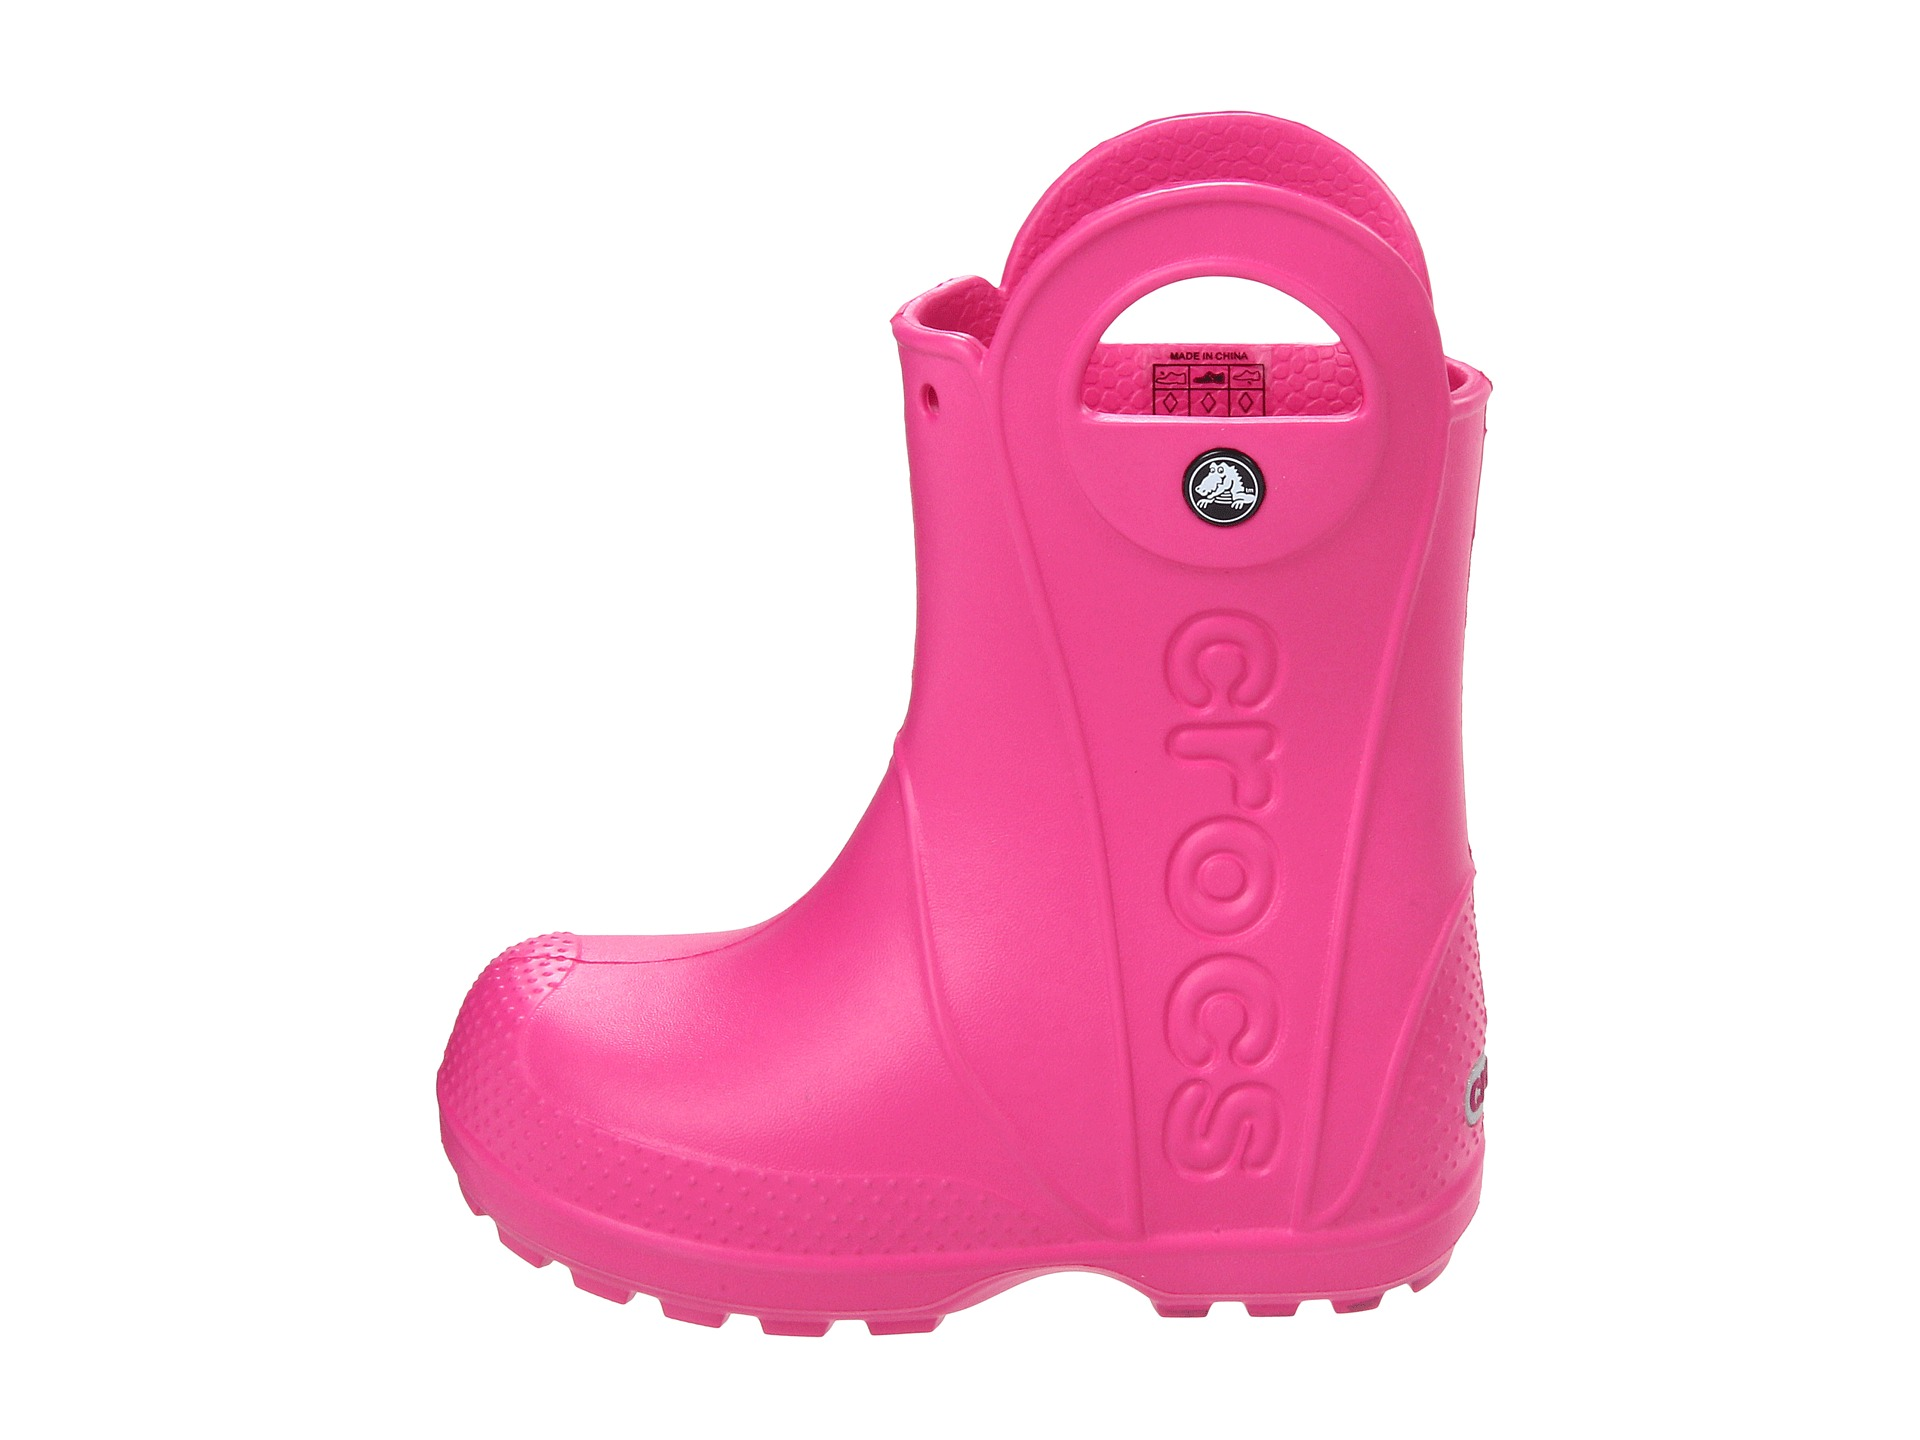 12803 crocs rain boot kids fucsia 1